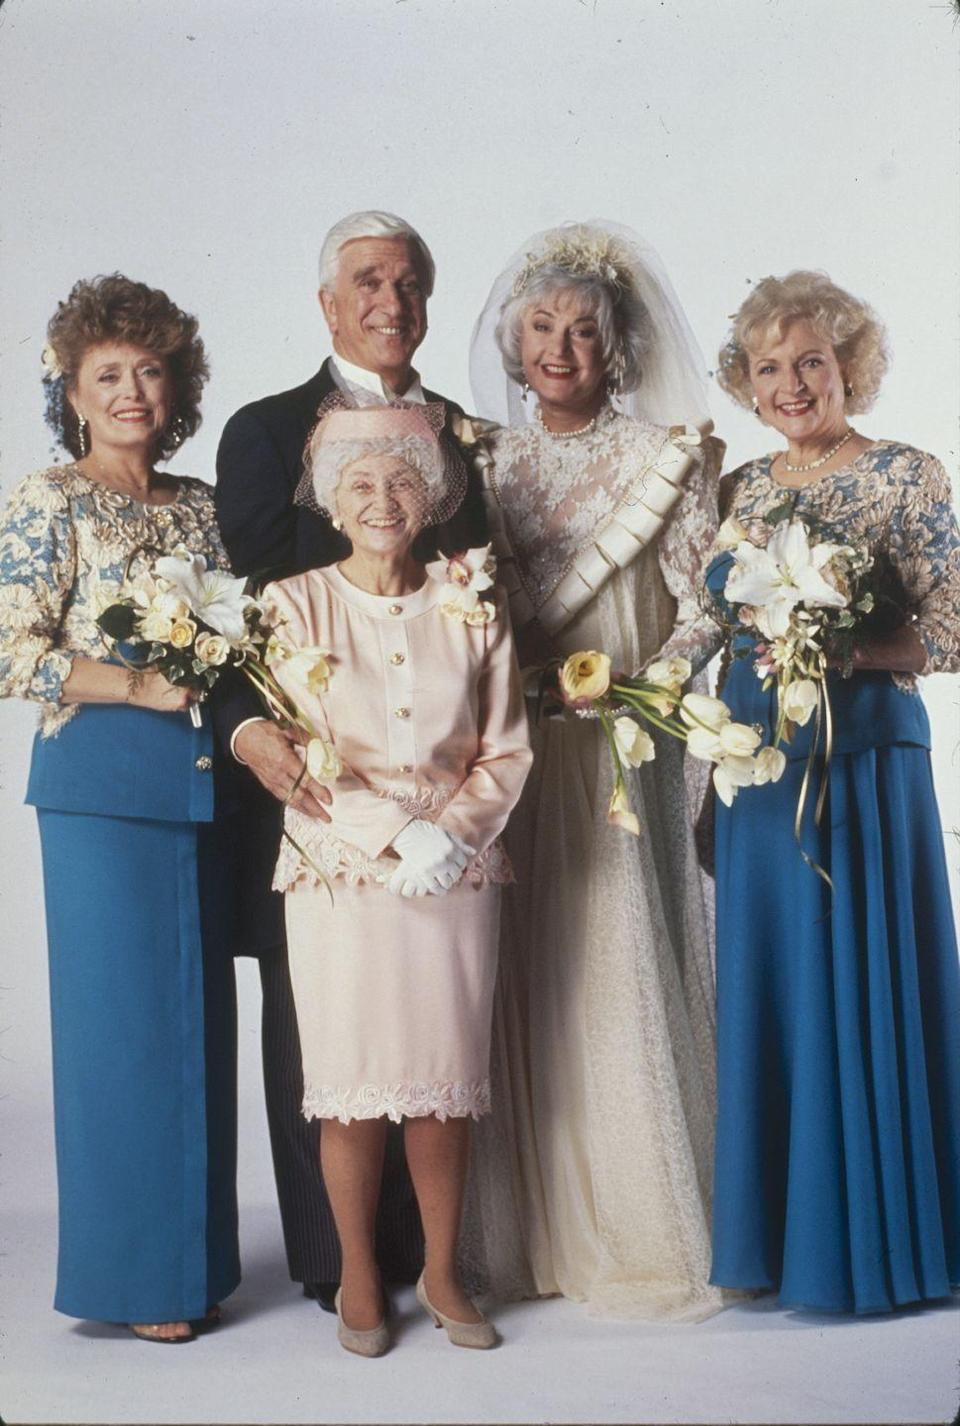 "<p>In 1992, <em>The Golden Girls</em> ended when<a href=""https://www.countryliving.com/life/entertainment/a44957/betty-white-and-bea-arthur-feud/"" rel=""nofollow noopener"" target=""_blank"" data-ylk=""slk:Arthur announced"" class=""link rapid-noclick-resp""> Arthur announced</a> that she wanted to leave the show. White, McClanahan, and Getty did a spin-off called <em>The Golden Palace</em>, but that only lasted one season. </p>"